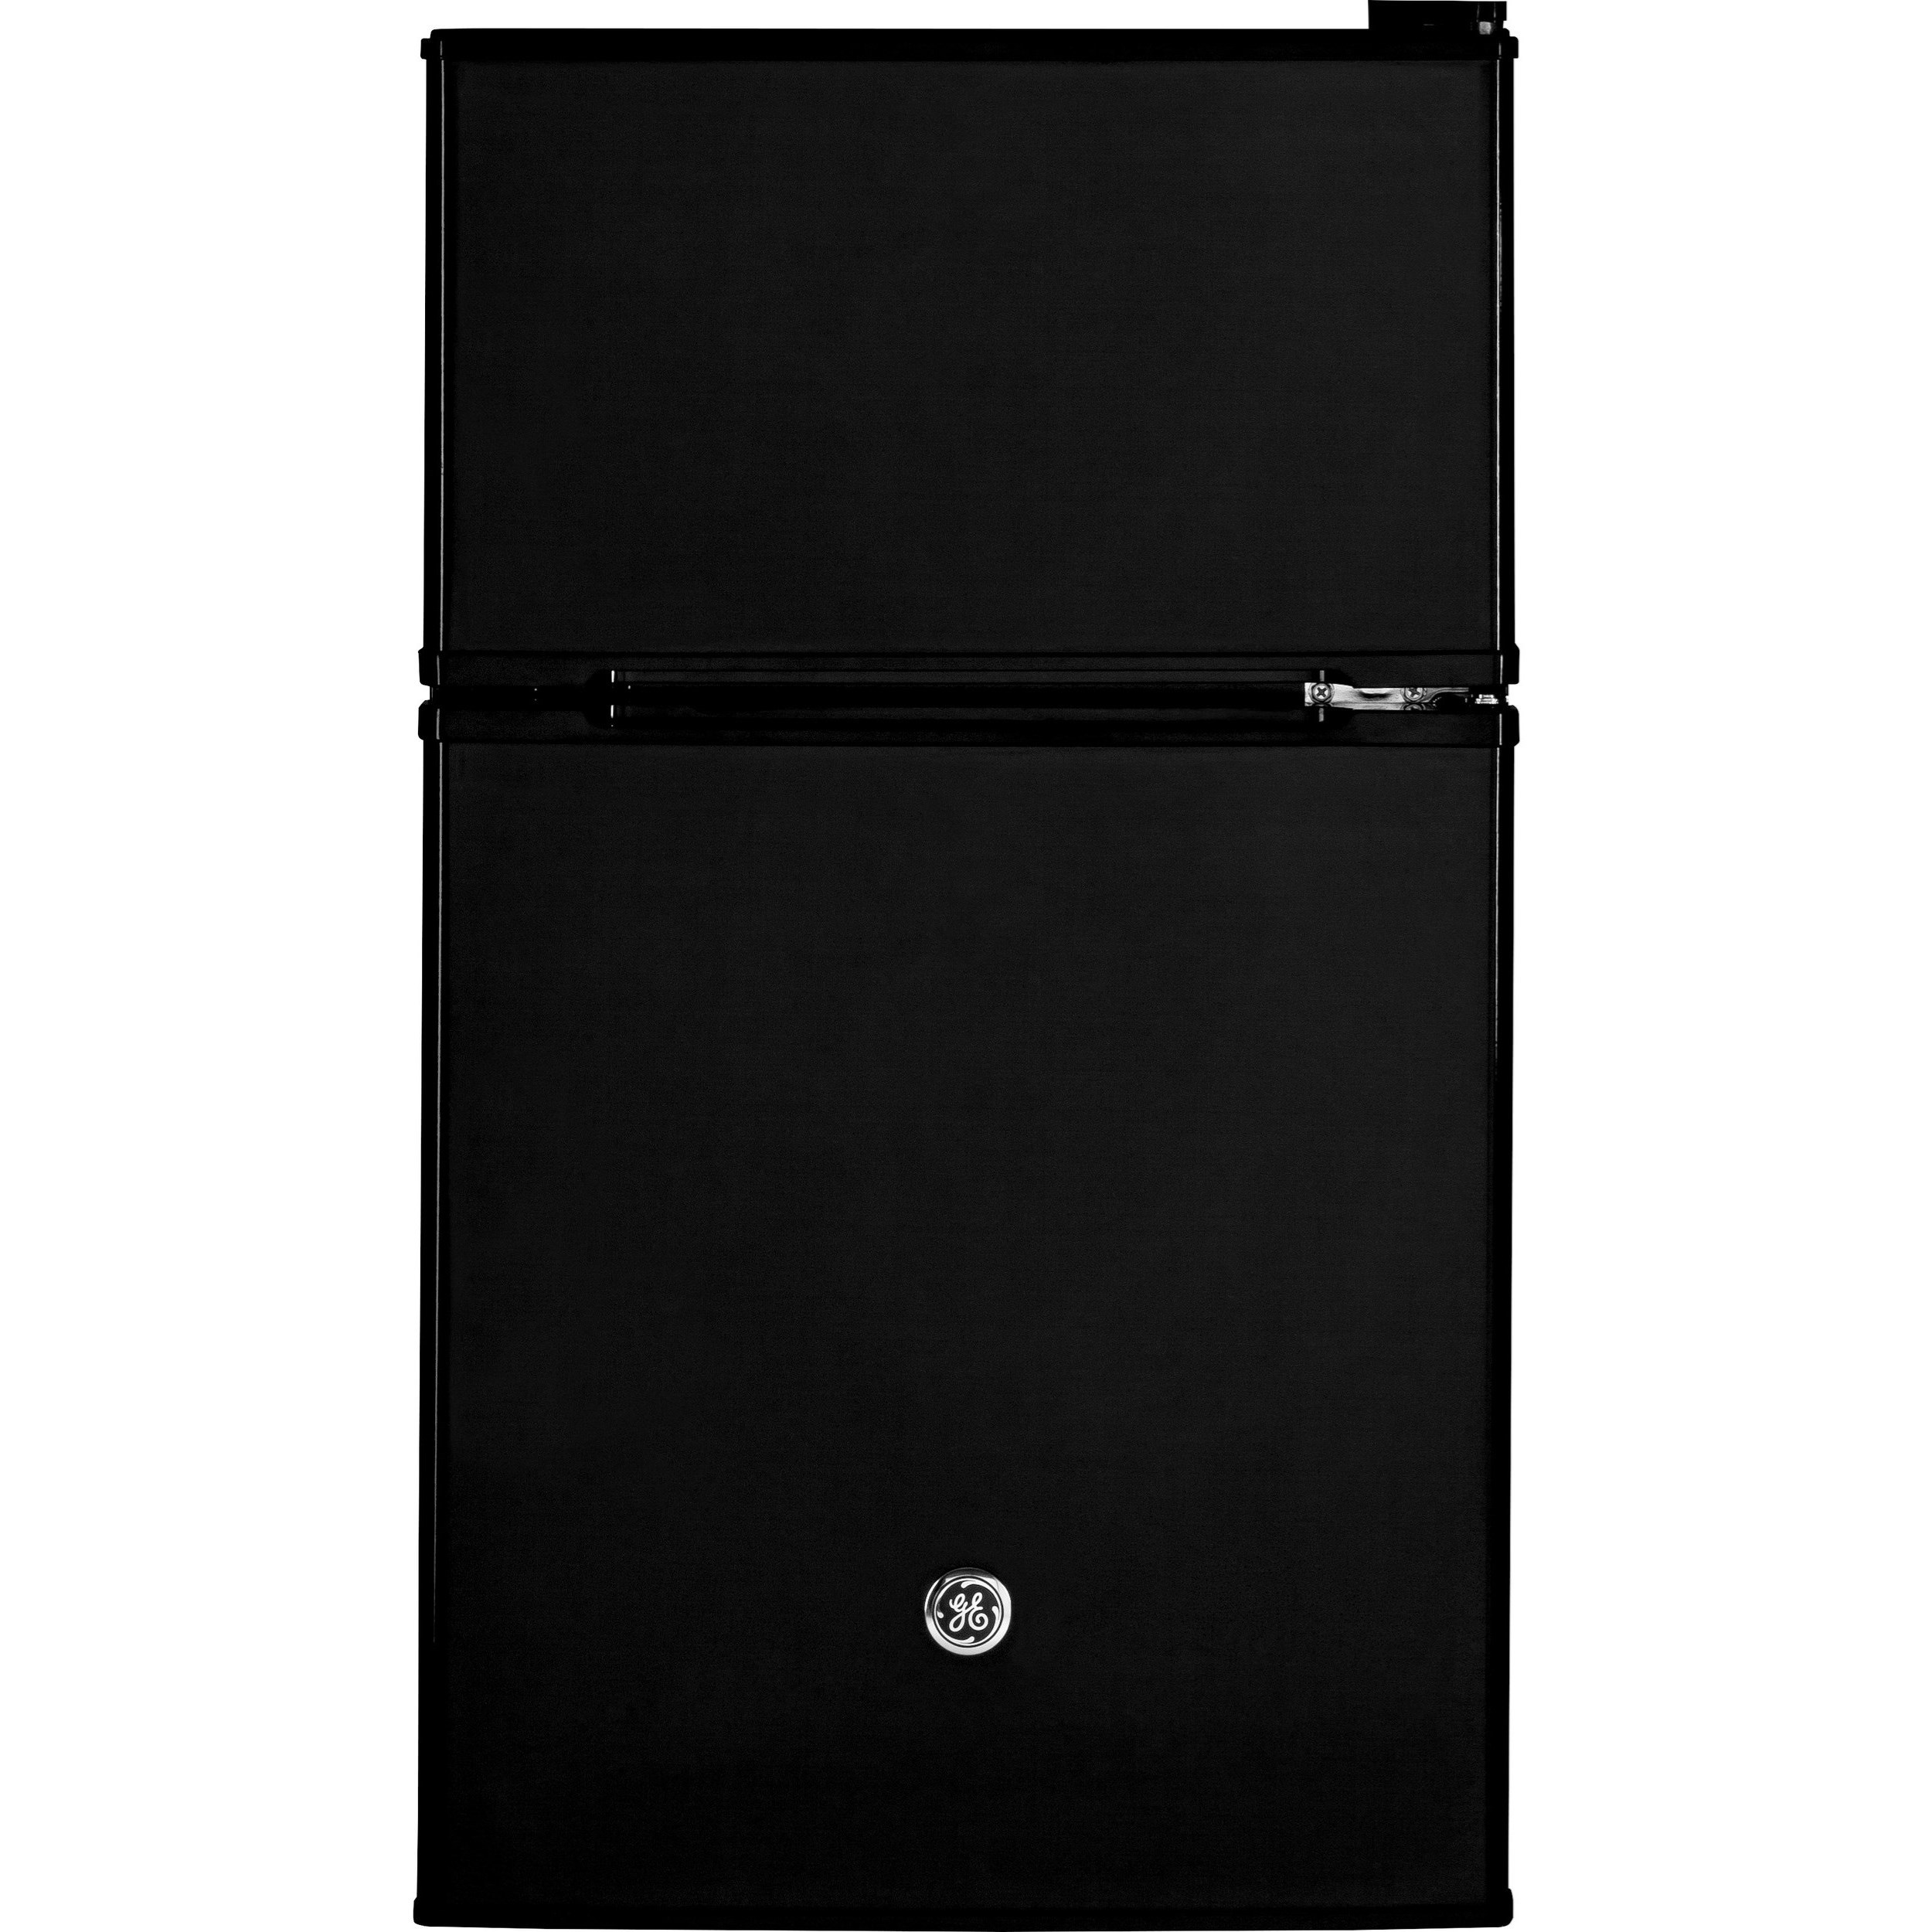 Compact Refrigerators GE® Double-Door Compact Refrigerator by GE Appliances at Furniture and ApplianceMart